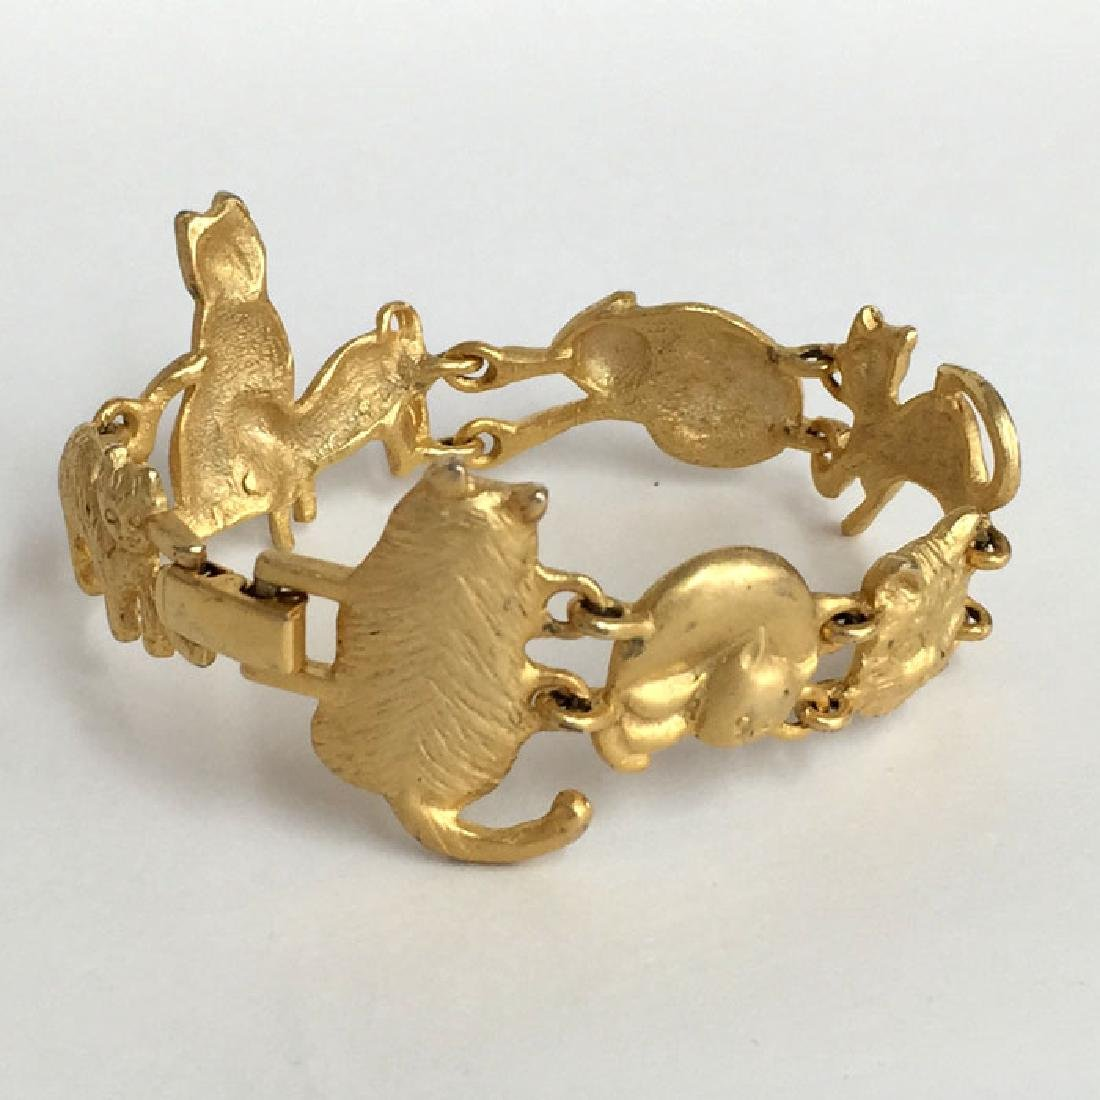 A.J.C.: Gold plated satin finish CATS shaped links - 8